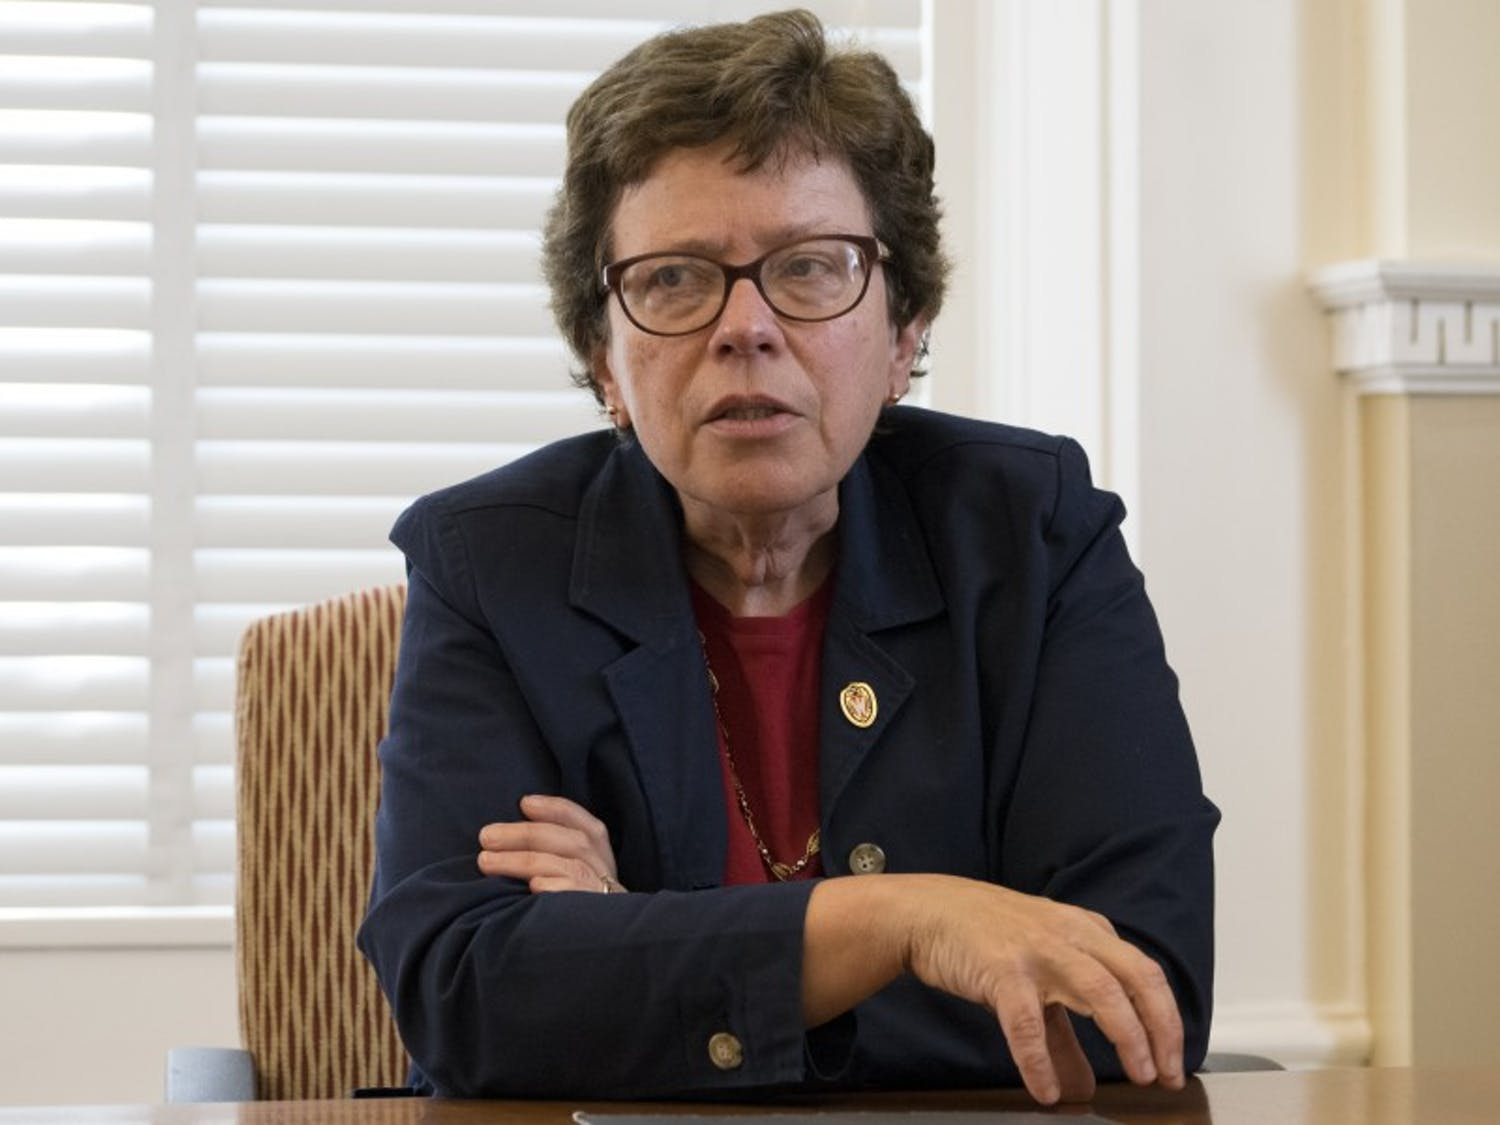 Chancellor Rebecca Blank said Wednesday that her hopes were high that students would be able to return to campus in the fall.